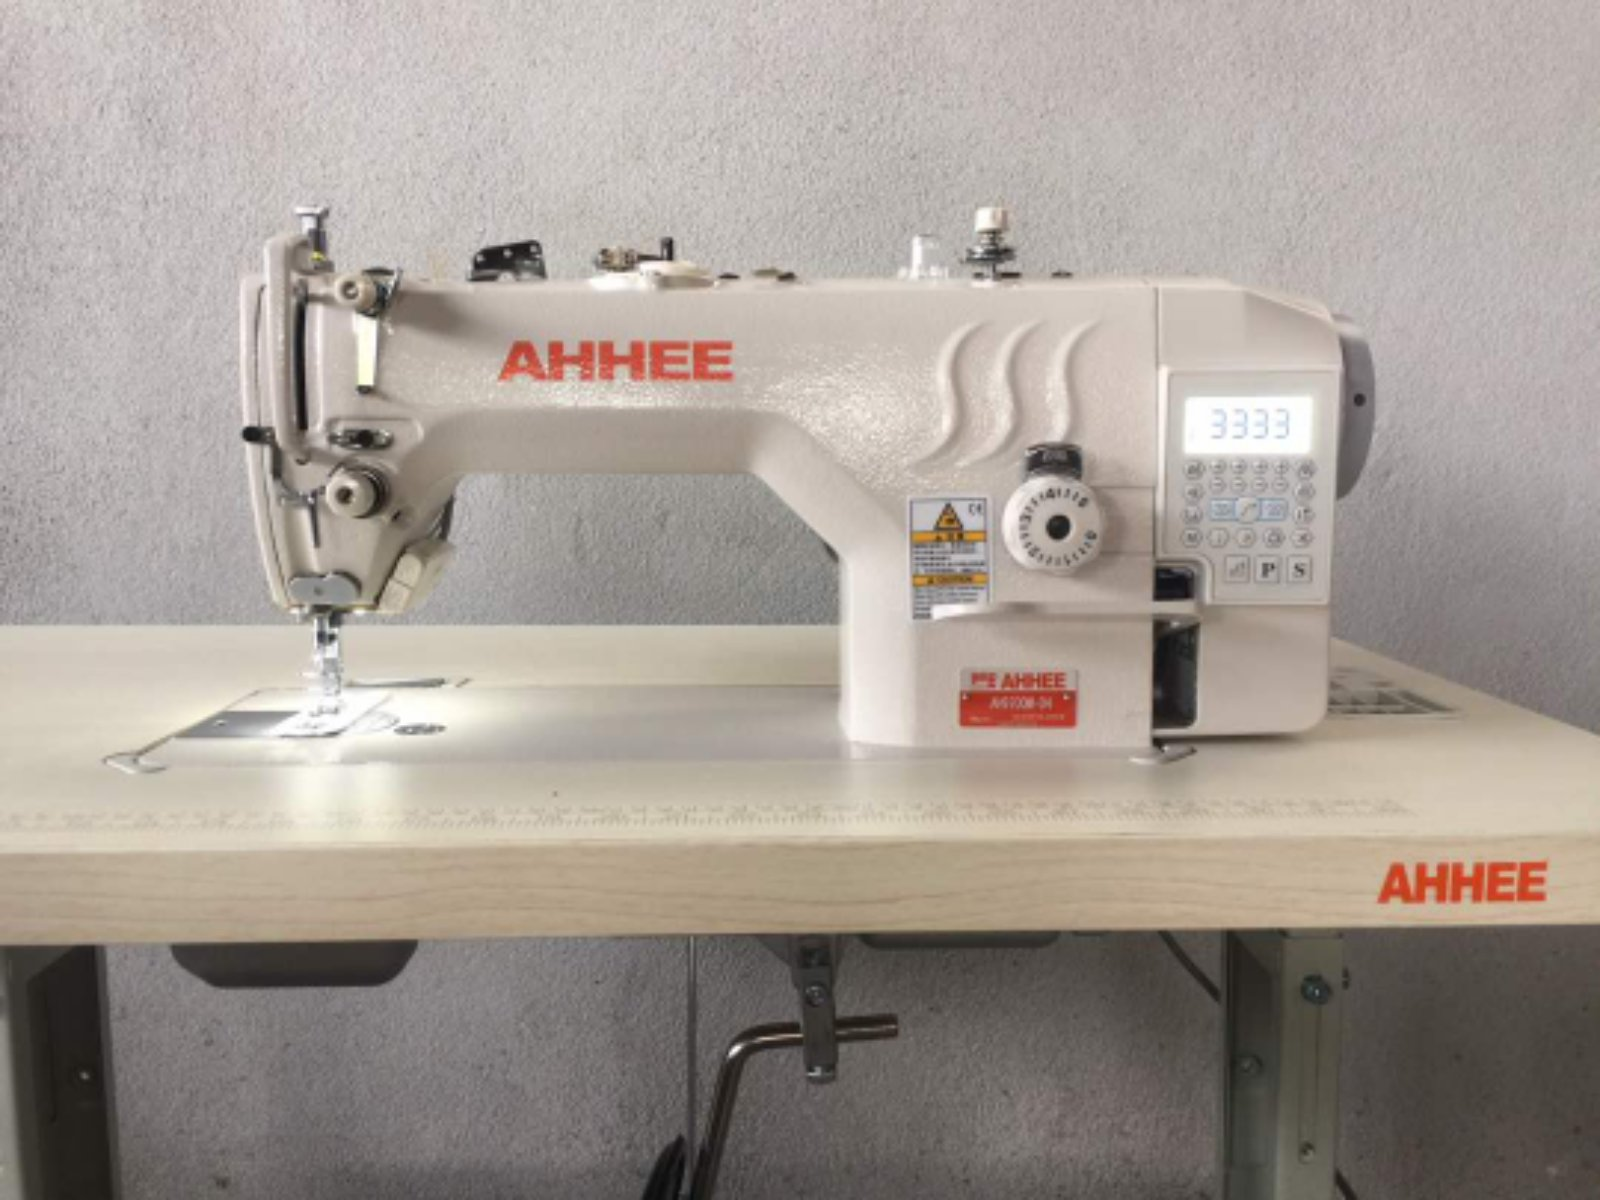 AHHEE super hi speed sewing machine